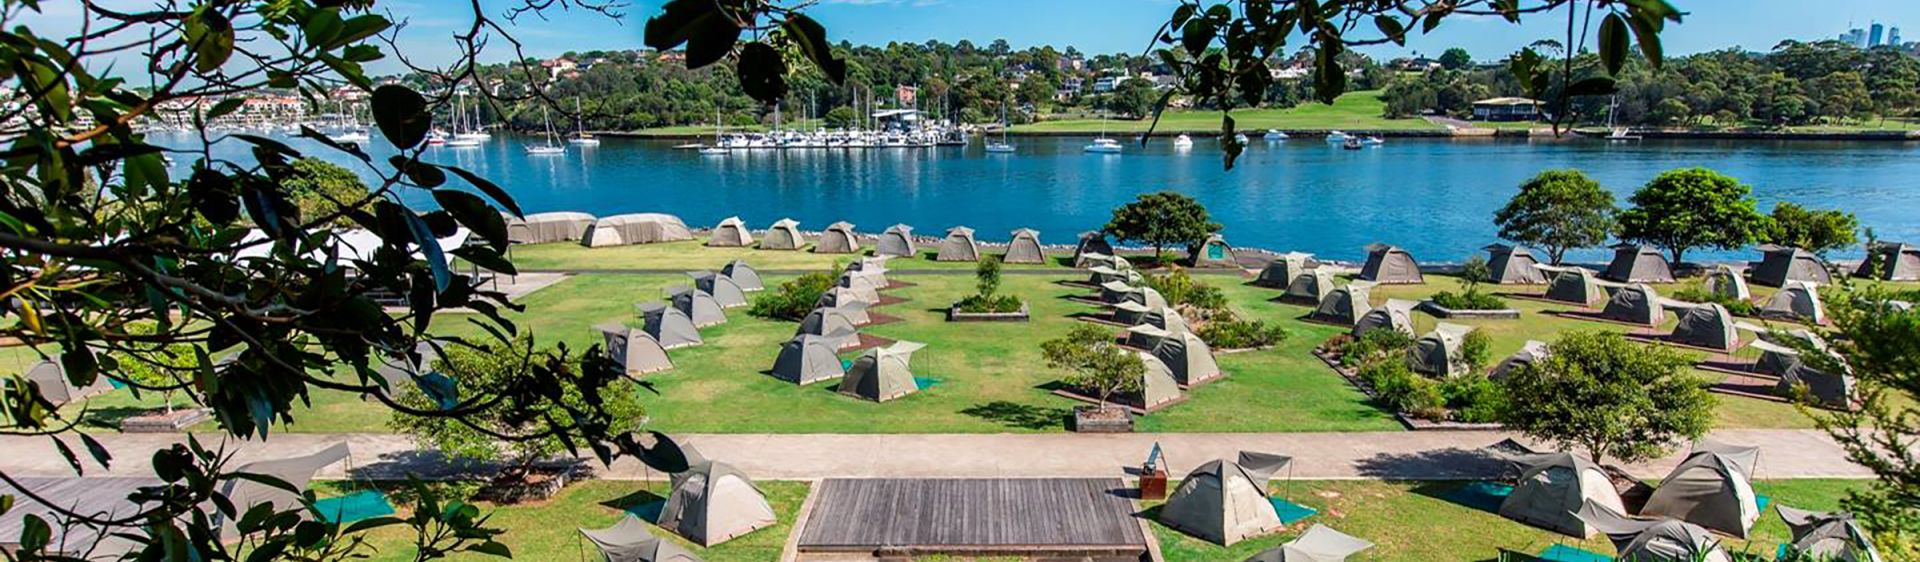 Camping on Cockatoo Island - Sydney Harbour